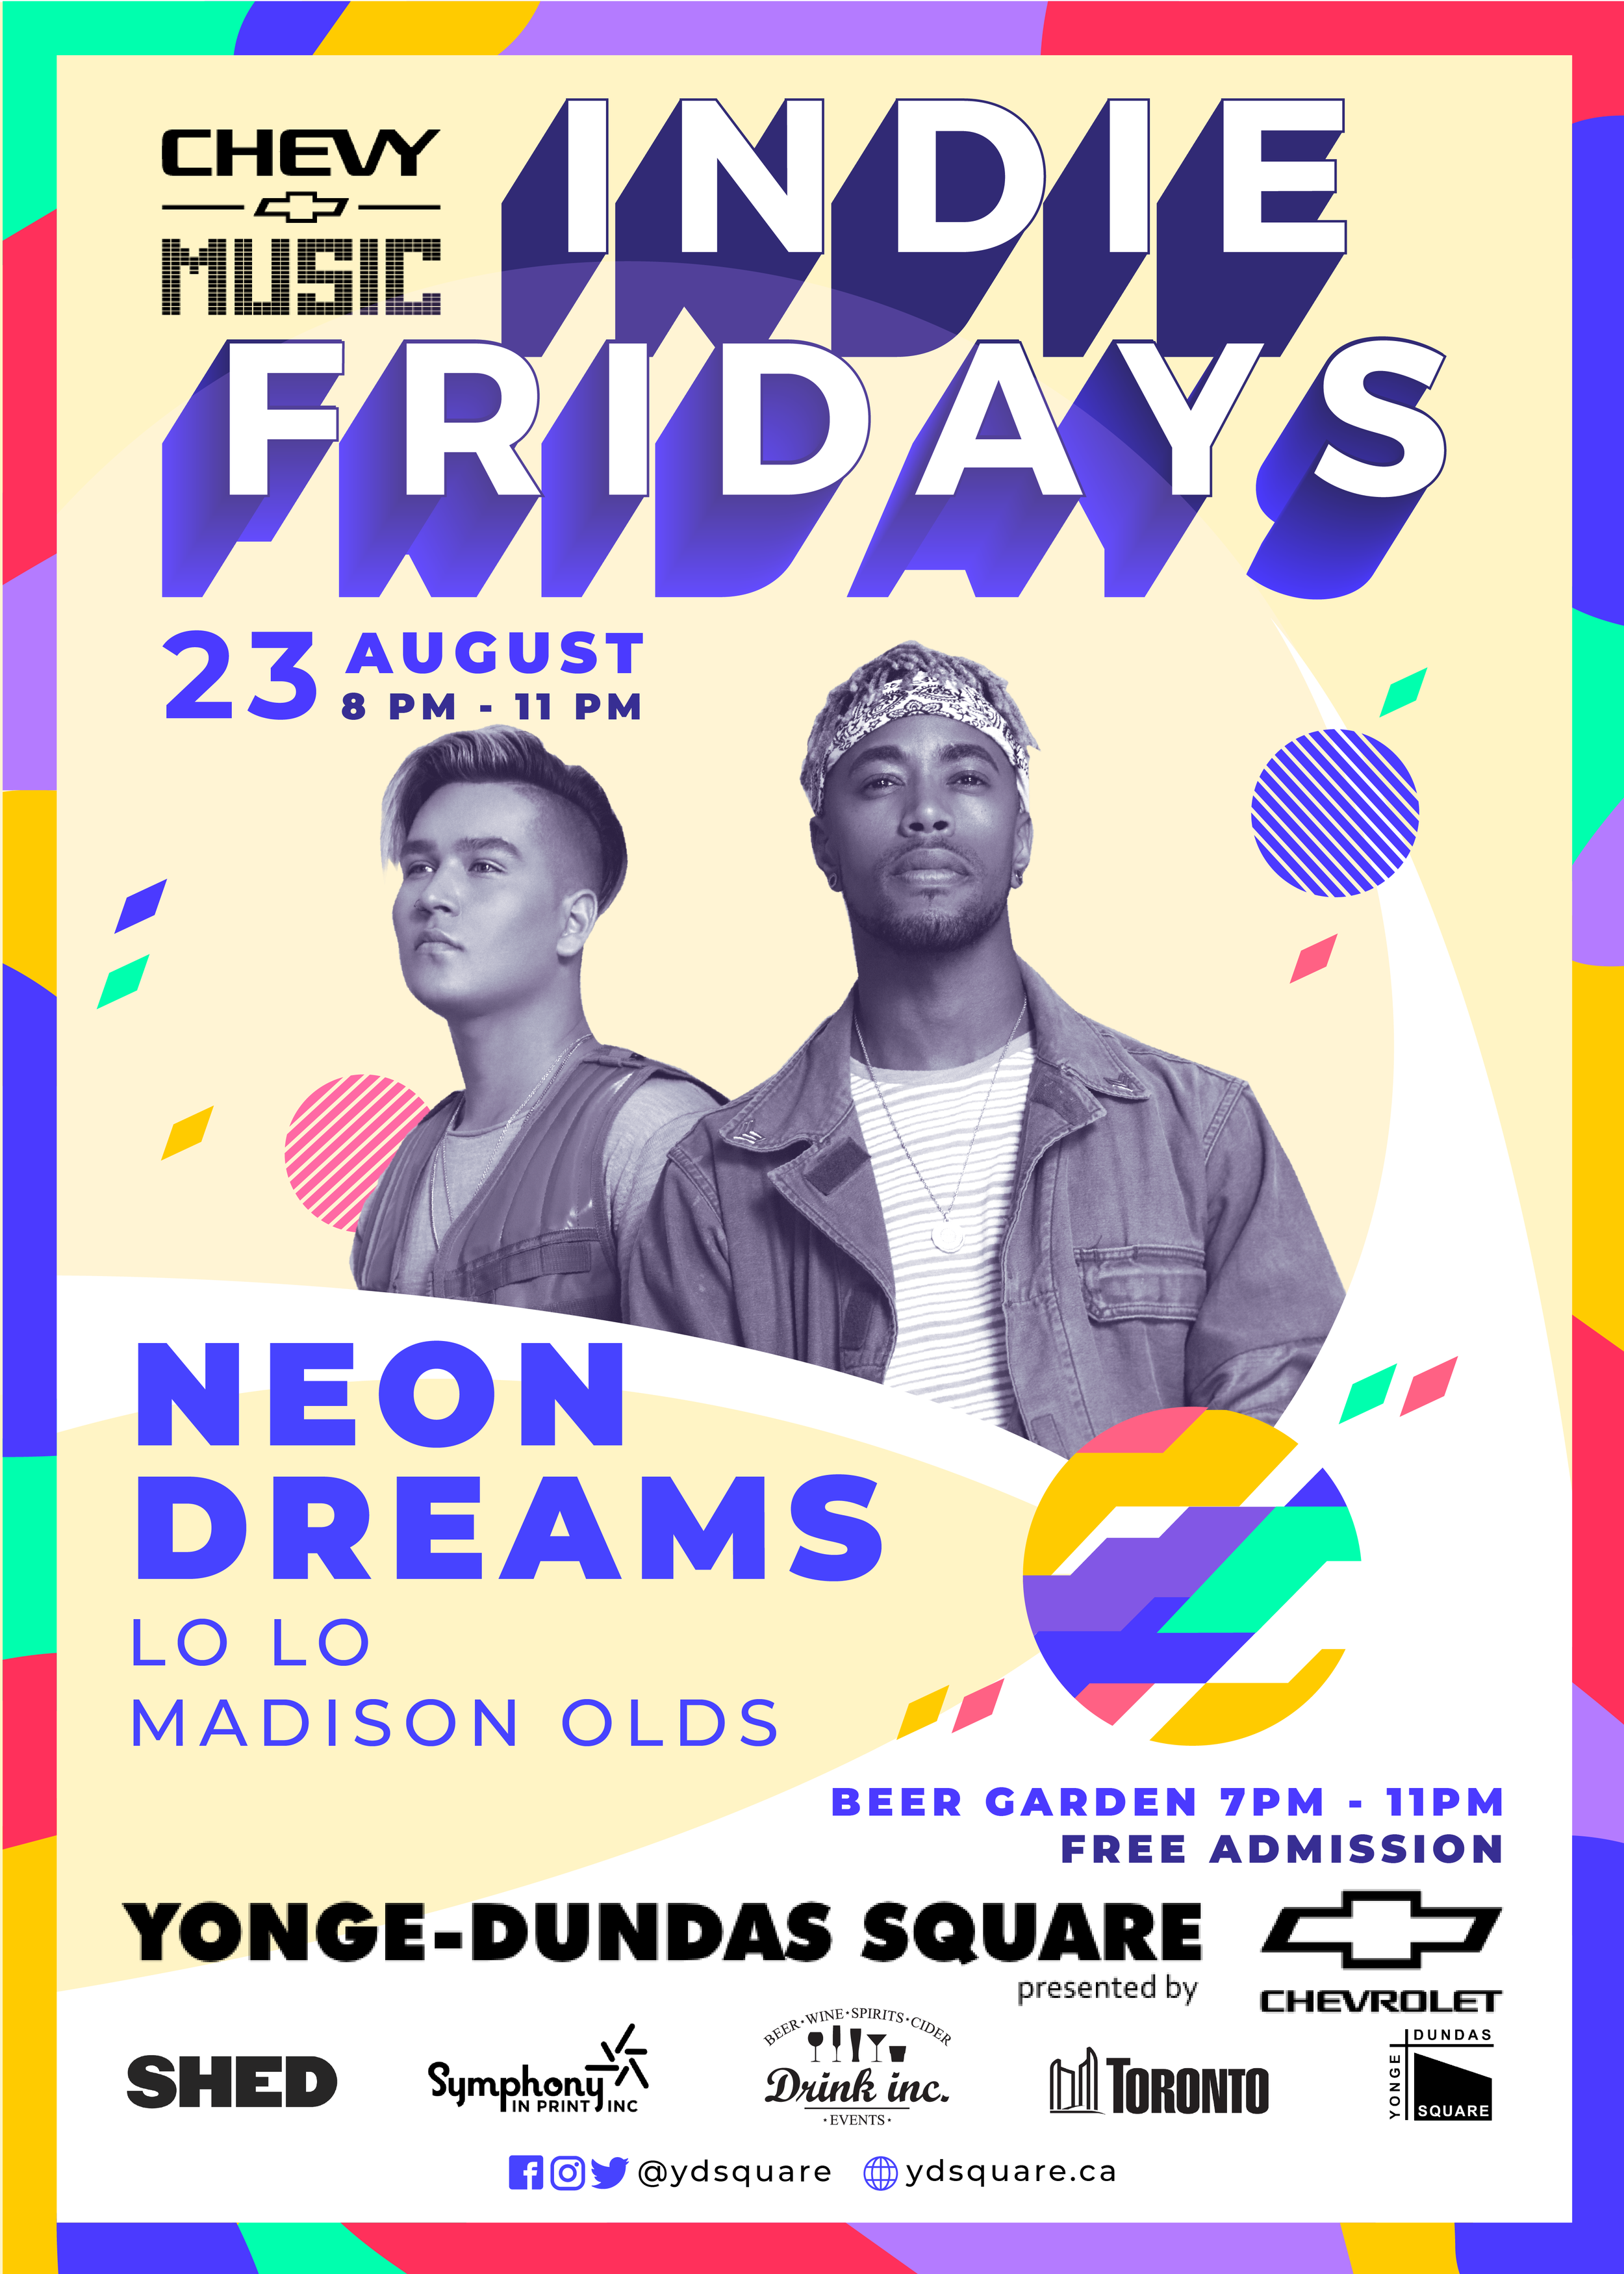 Indie Fridays - Date Specific 2688x1920 - Neon Dreams.png